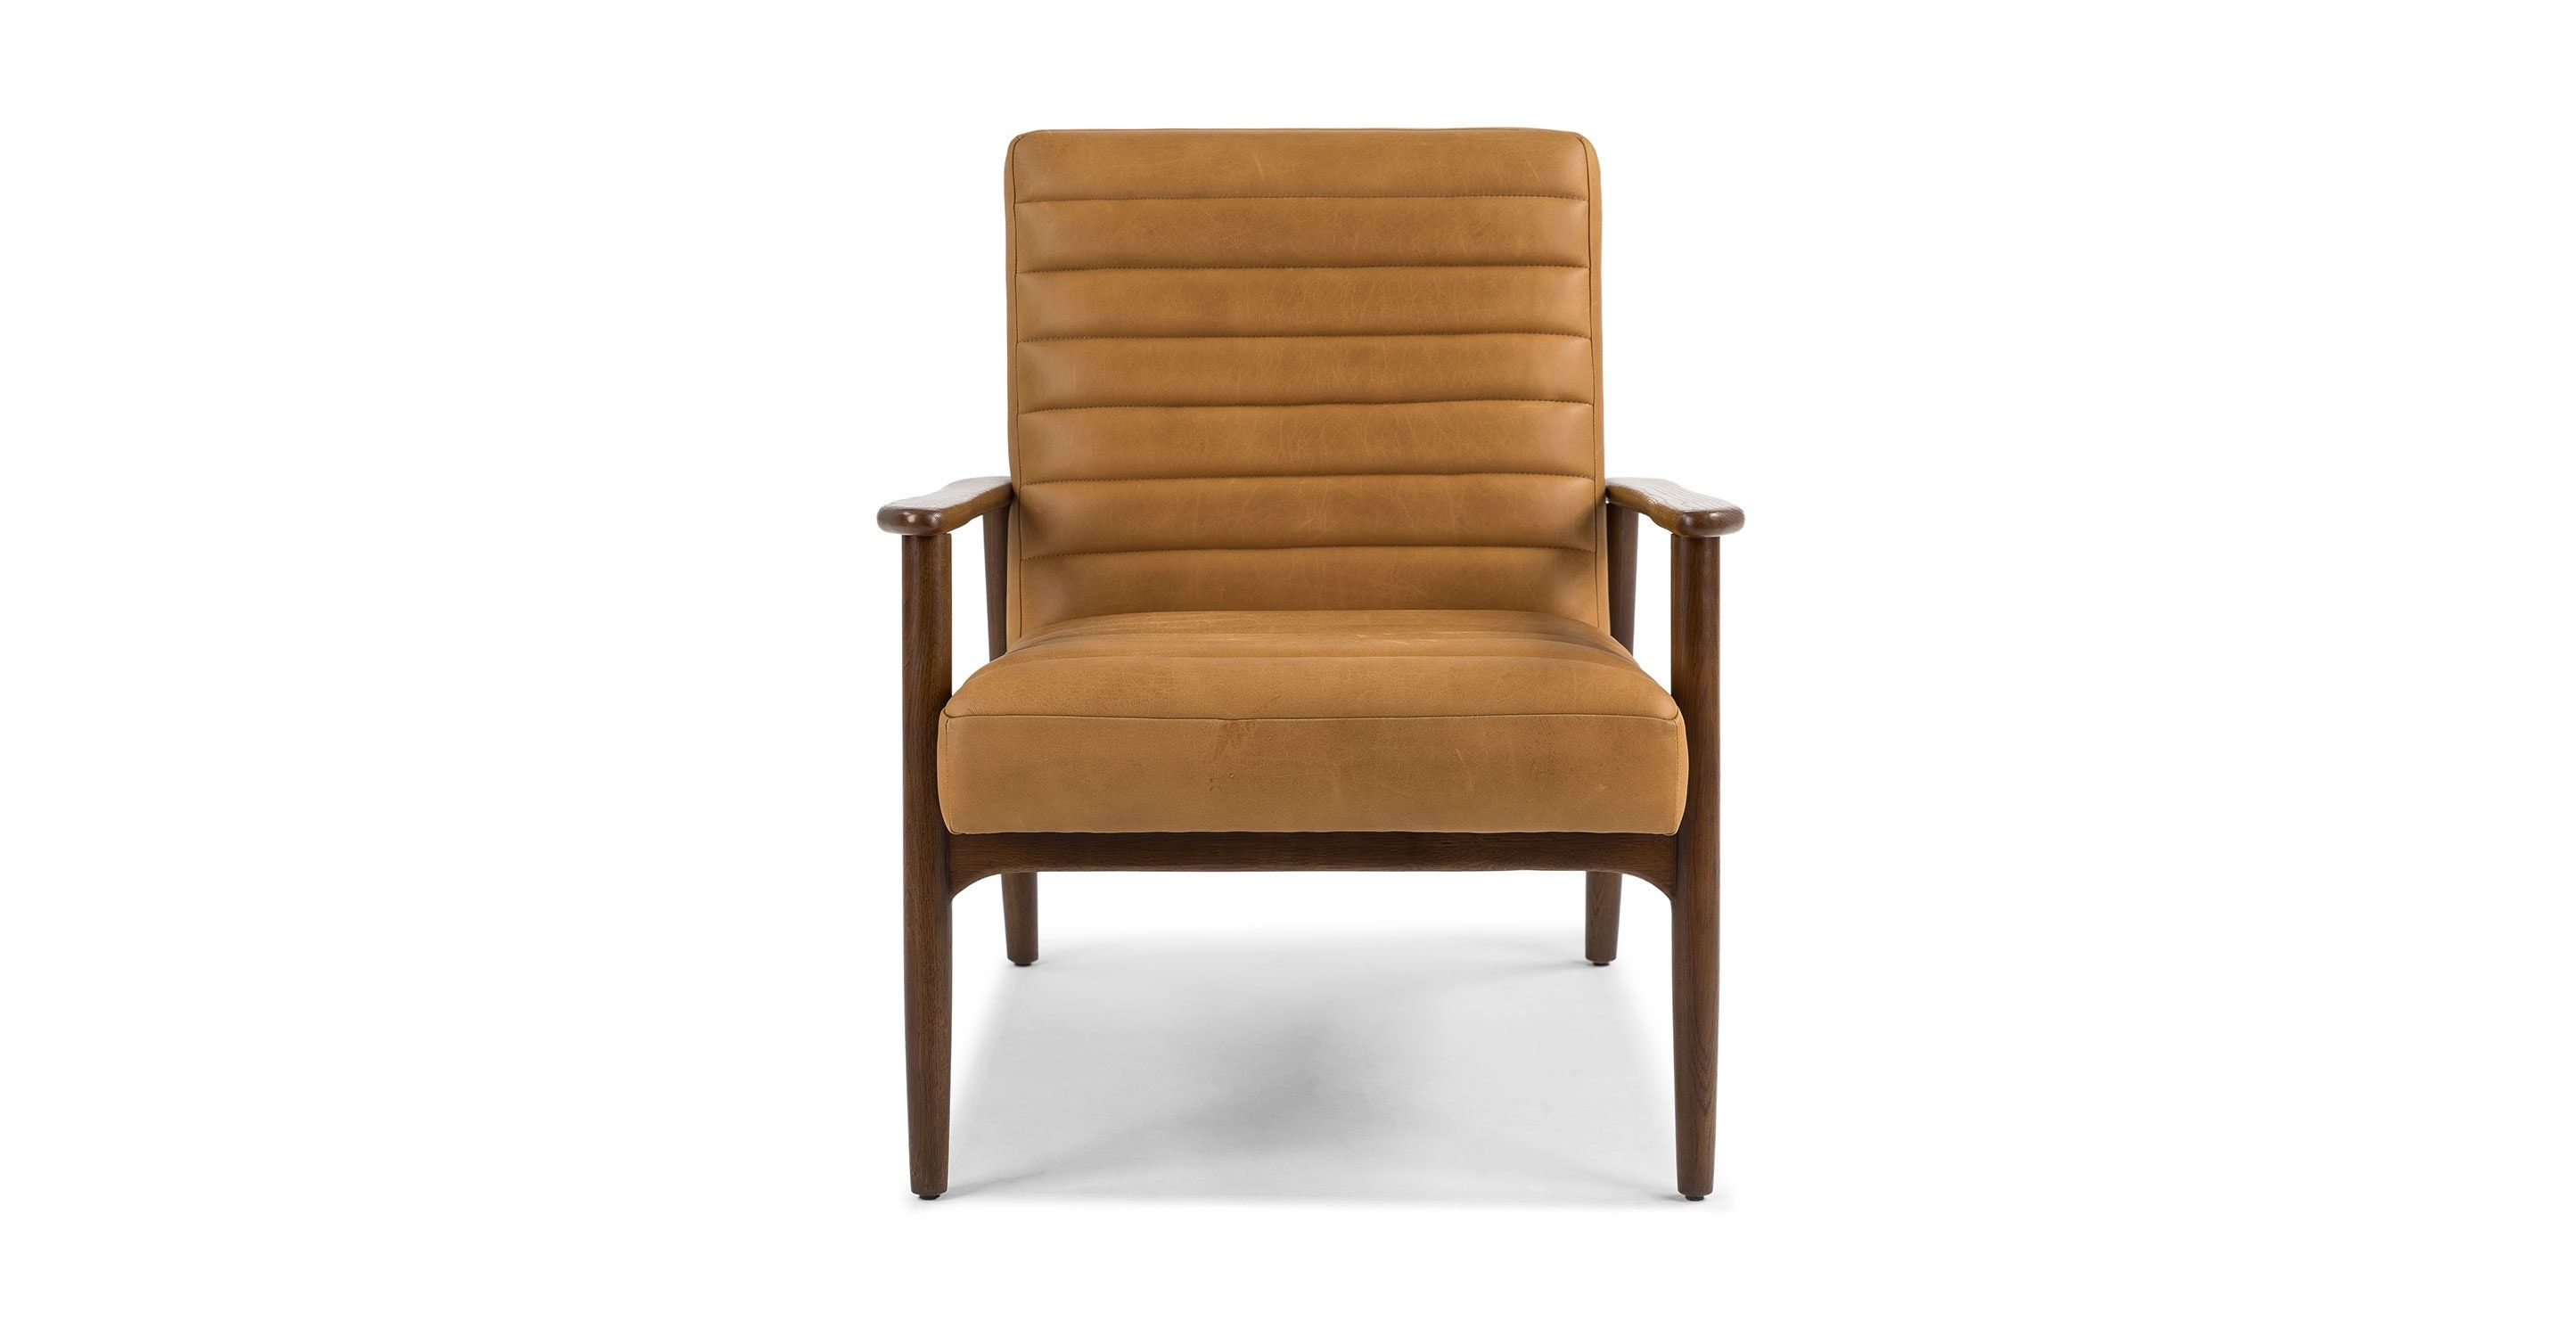 Tan Leather Chair Upholstered